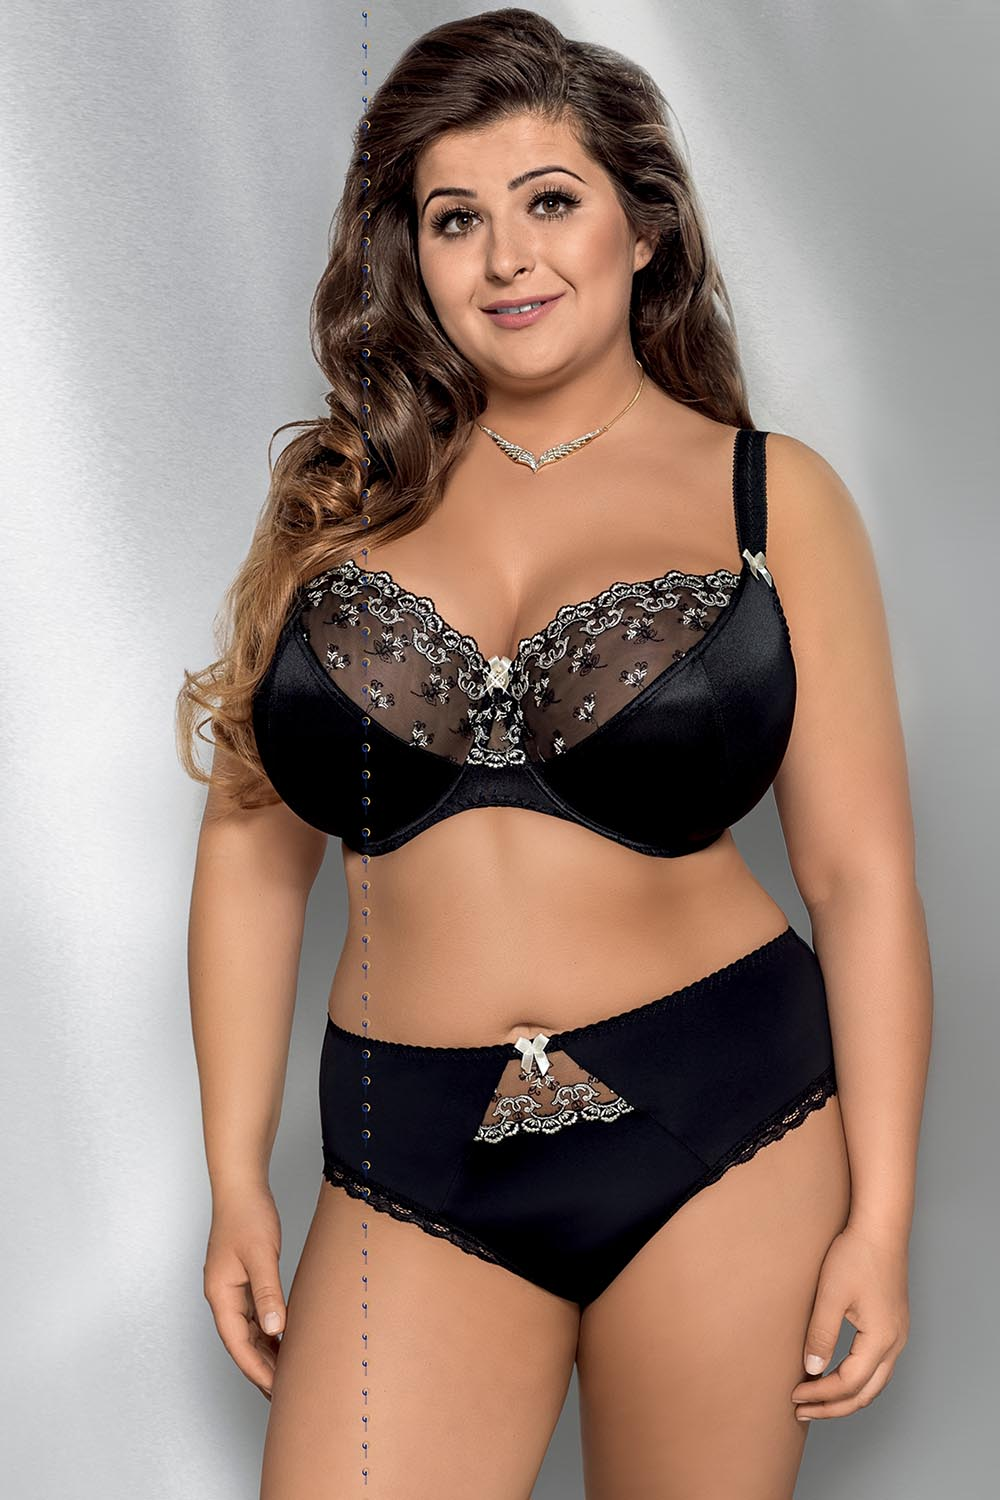 Discover perfect fitting lingerie whatever your style or size. From lace lingerie to everyday cotton nightwear, in a range of back sizes and cup sizes A to L. Sexy Plus Size Lingerie - Underwear & Bras | .